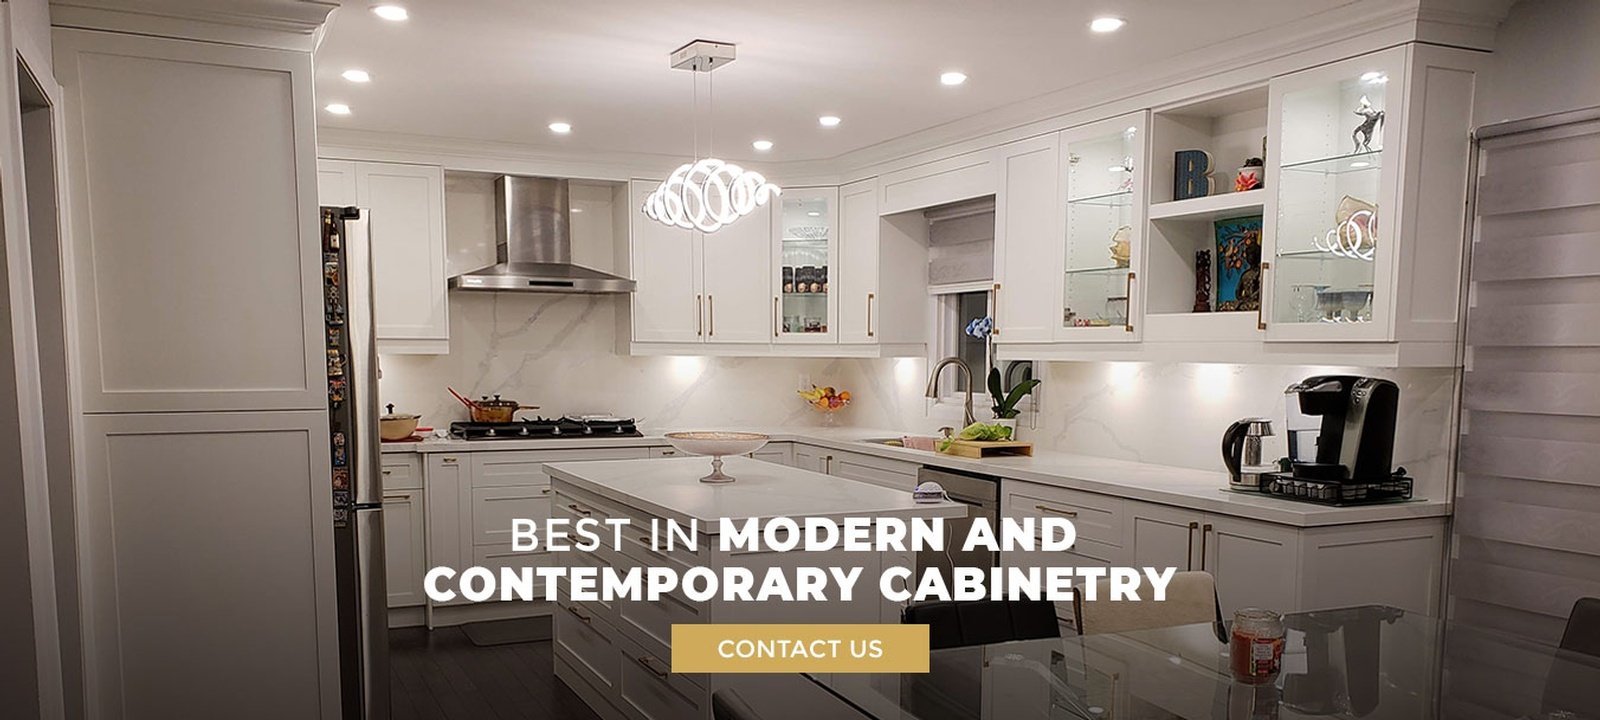 Best in Modern and Contemporary Cabinetry - PCMINC